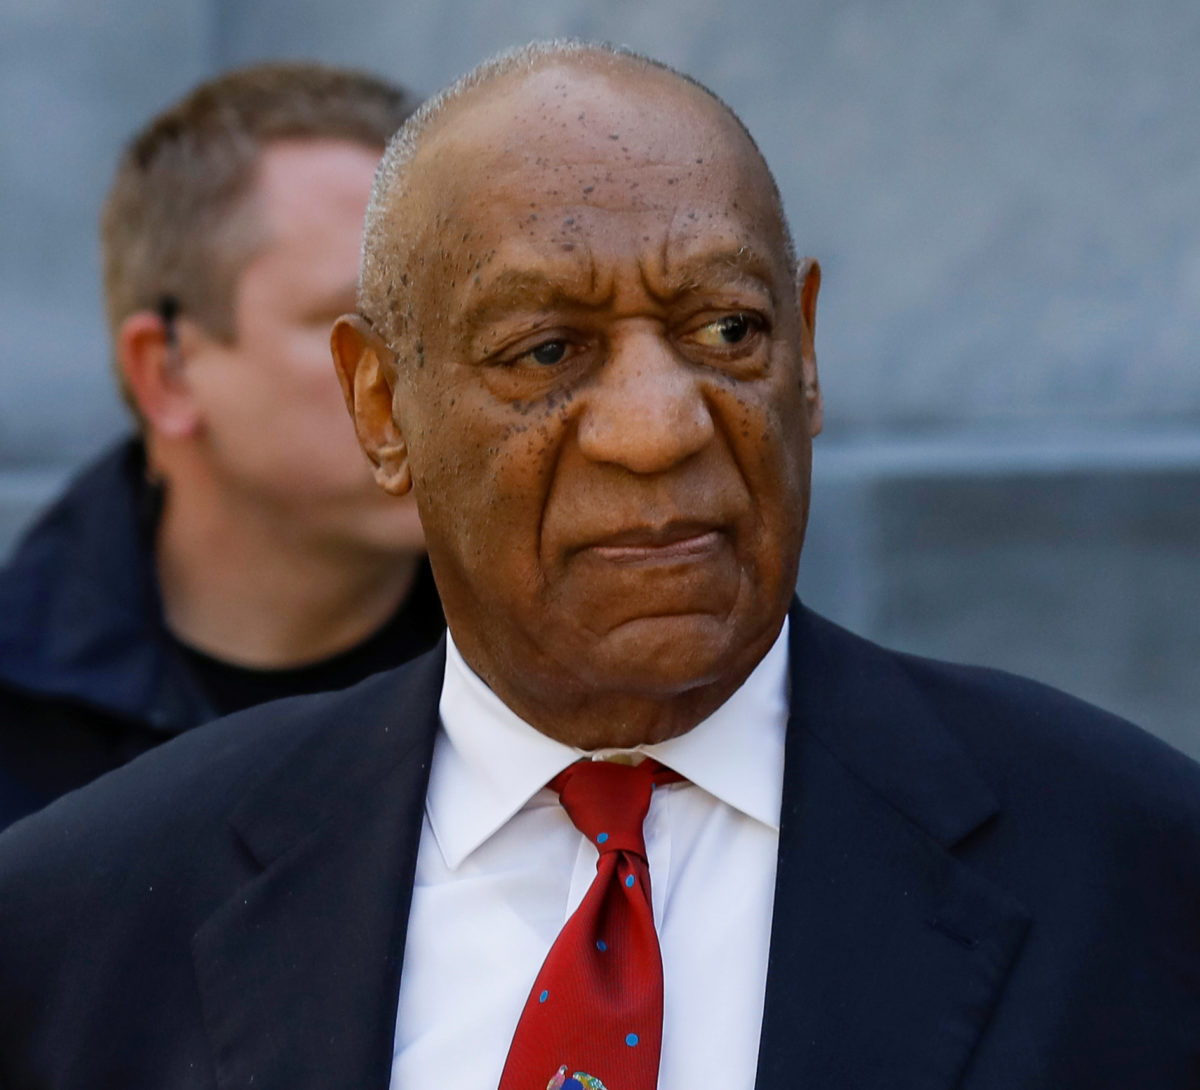 News diary 24-30 September: Bill Cosby returns to court for sentencing and biggest strike in Ryanair history expected